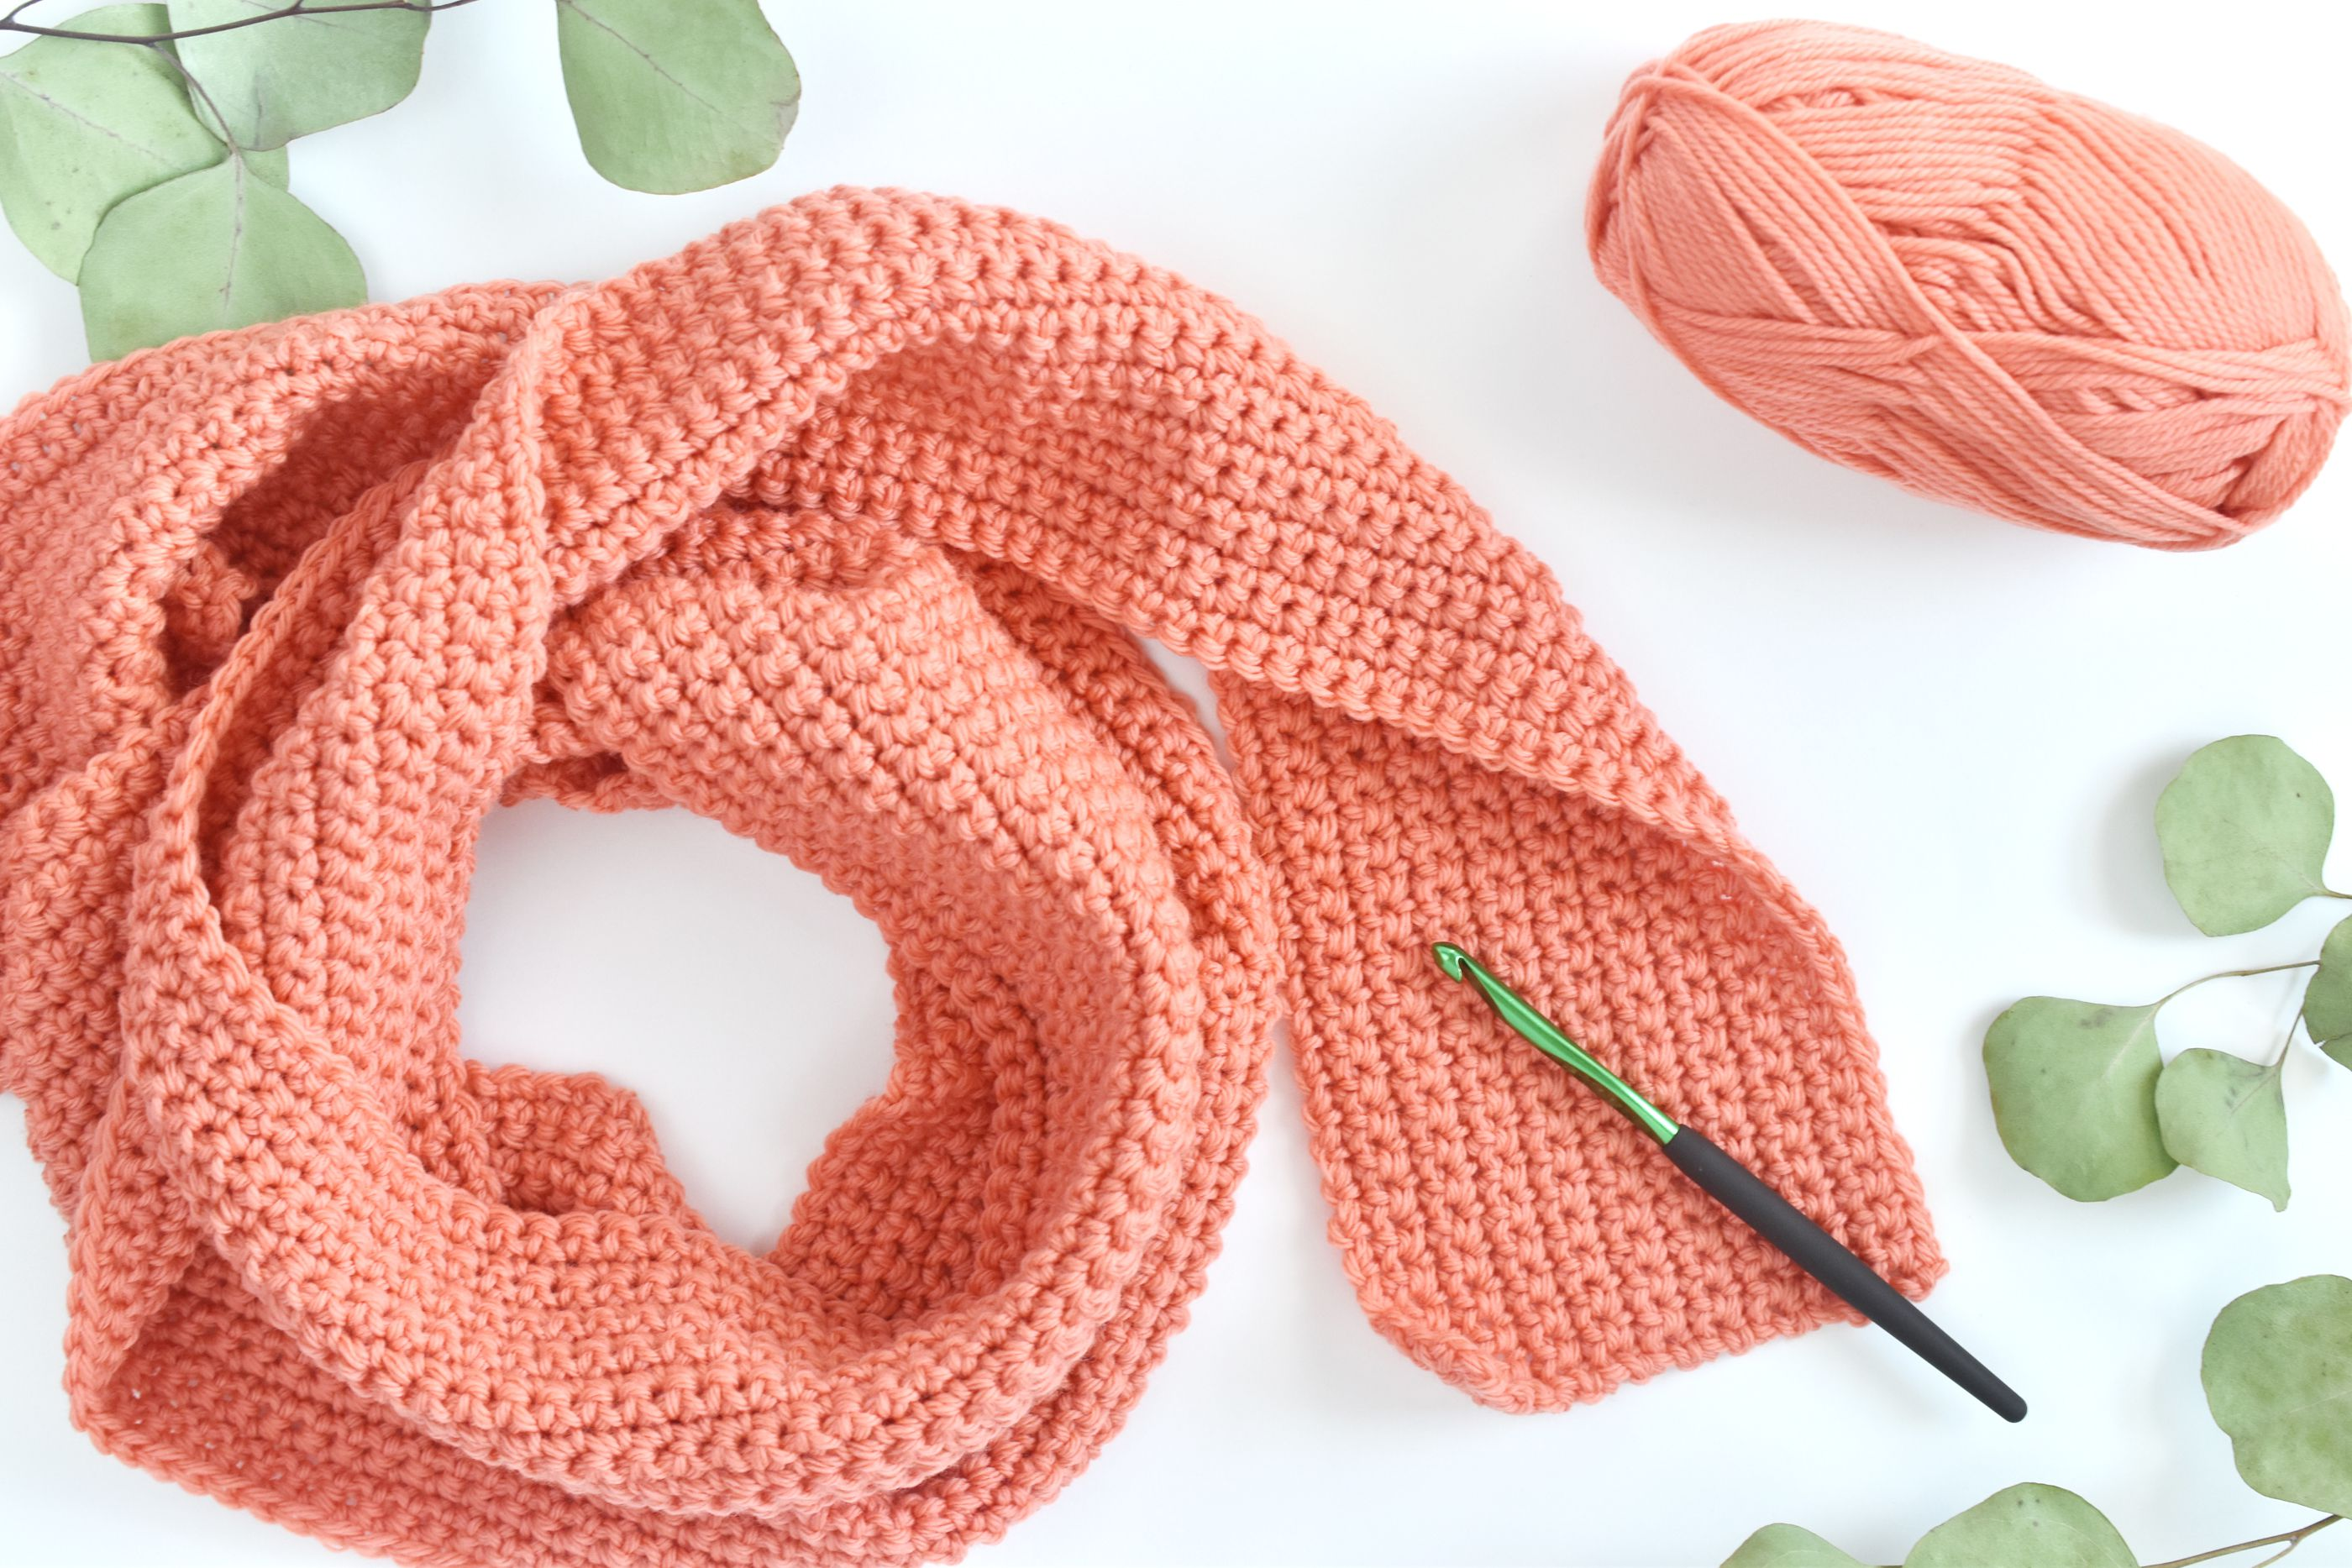 d3aaa23cb798 How to Crochet a Scarf for Beginners